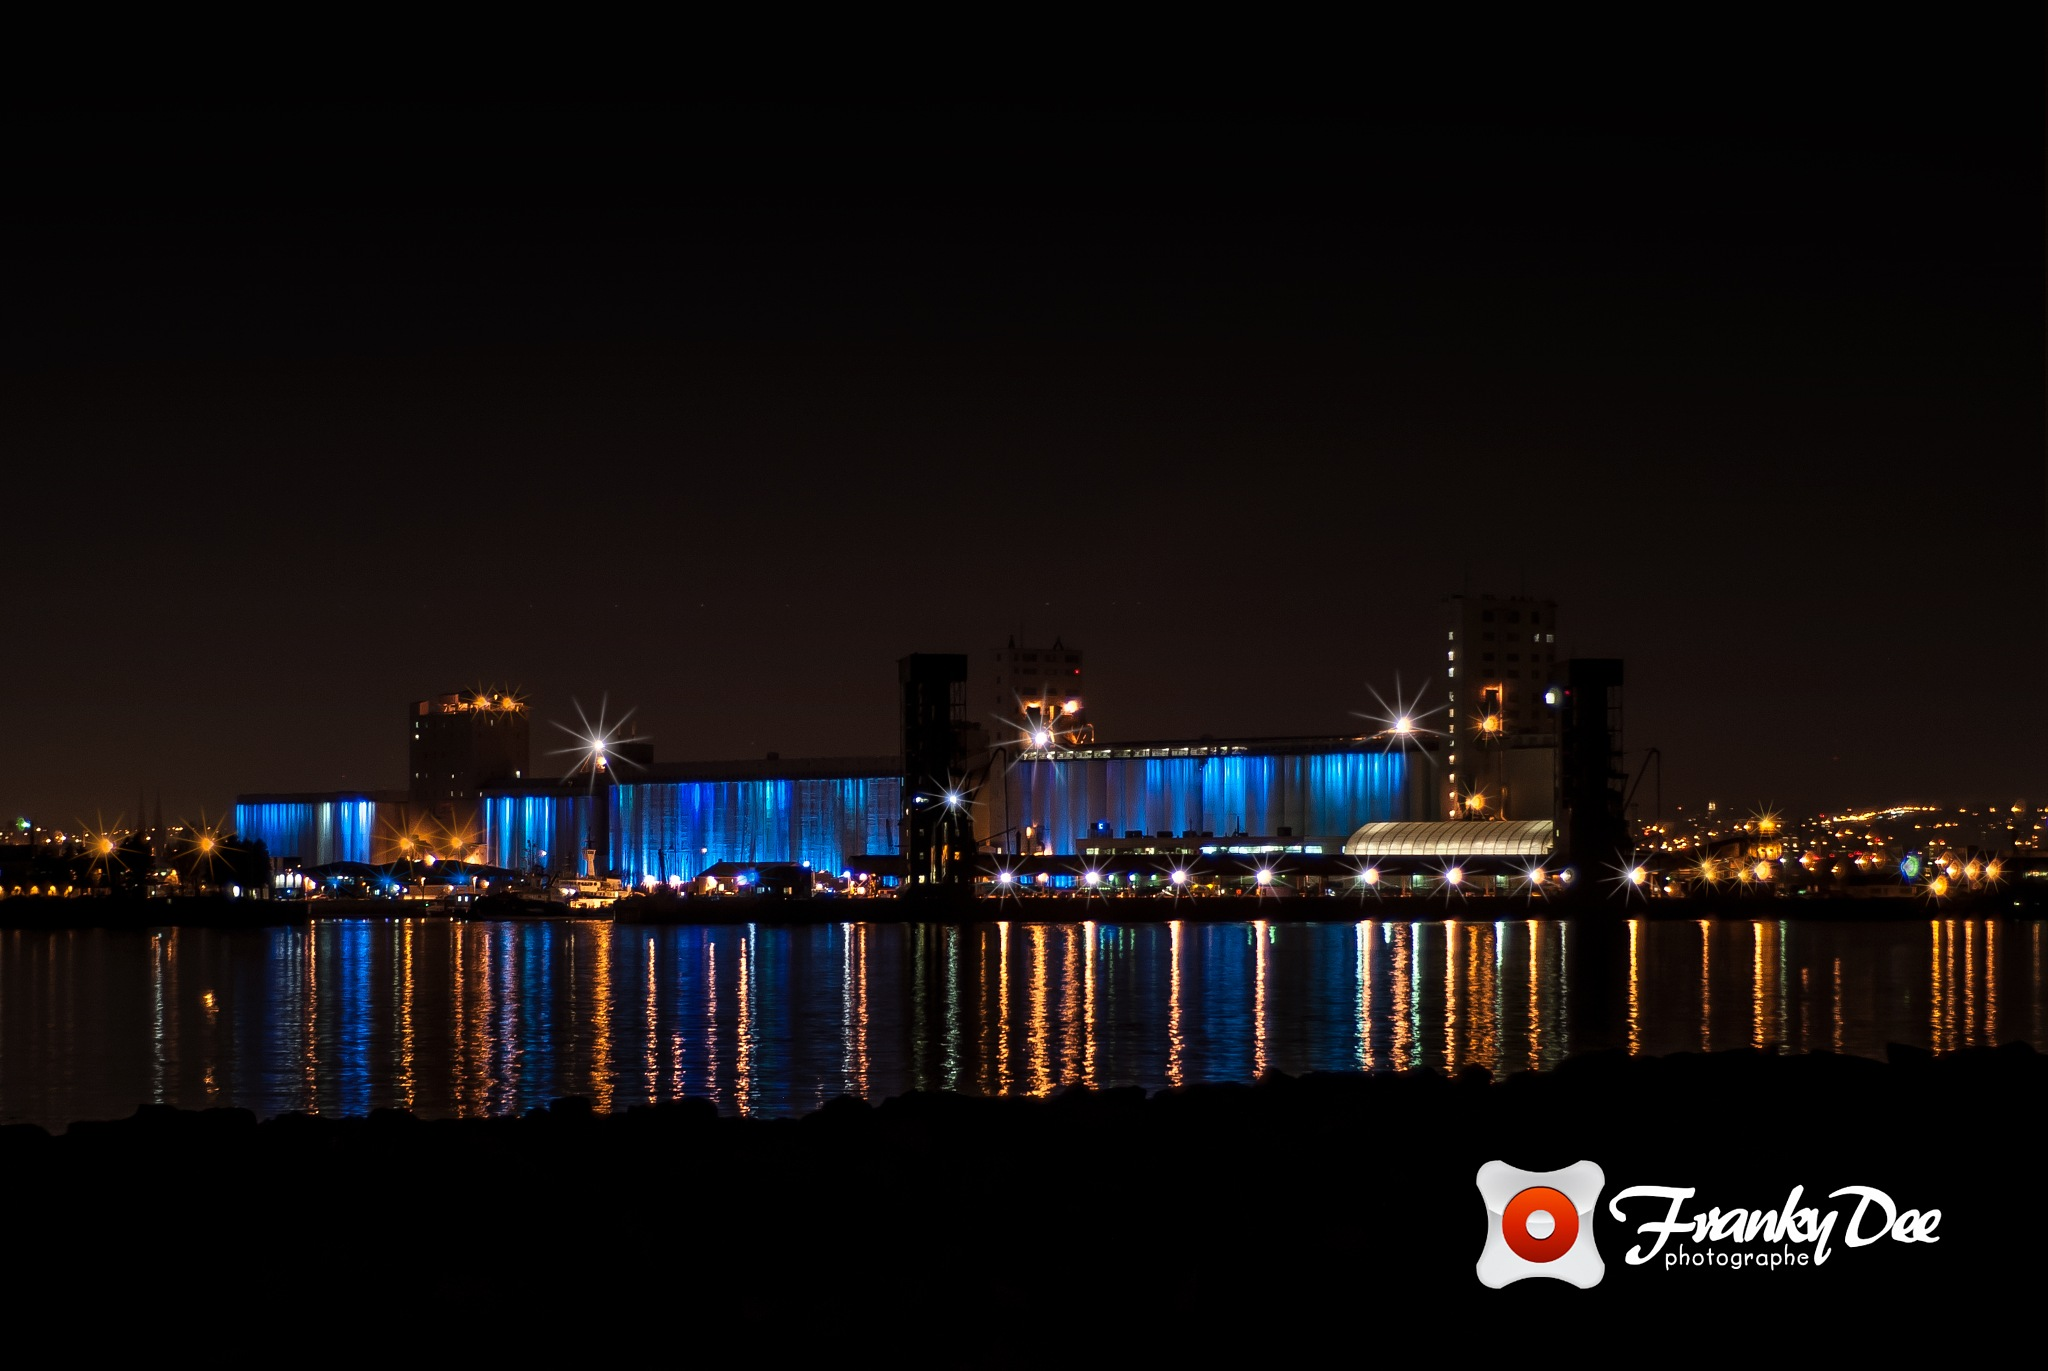 View of Quebec by night by ..:: FRANKYDEE ::..